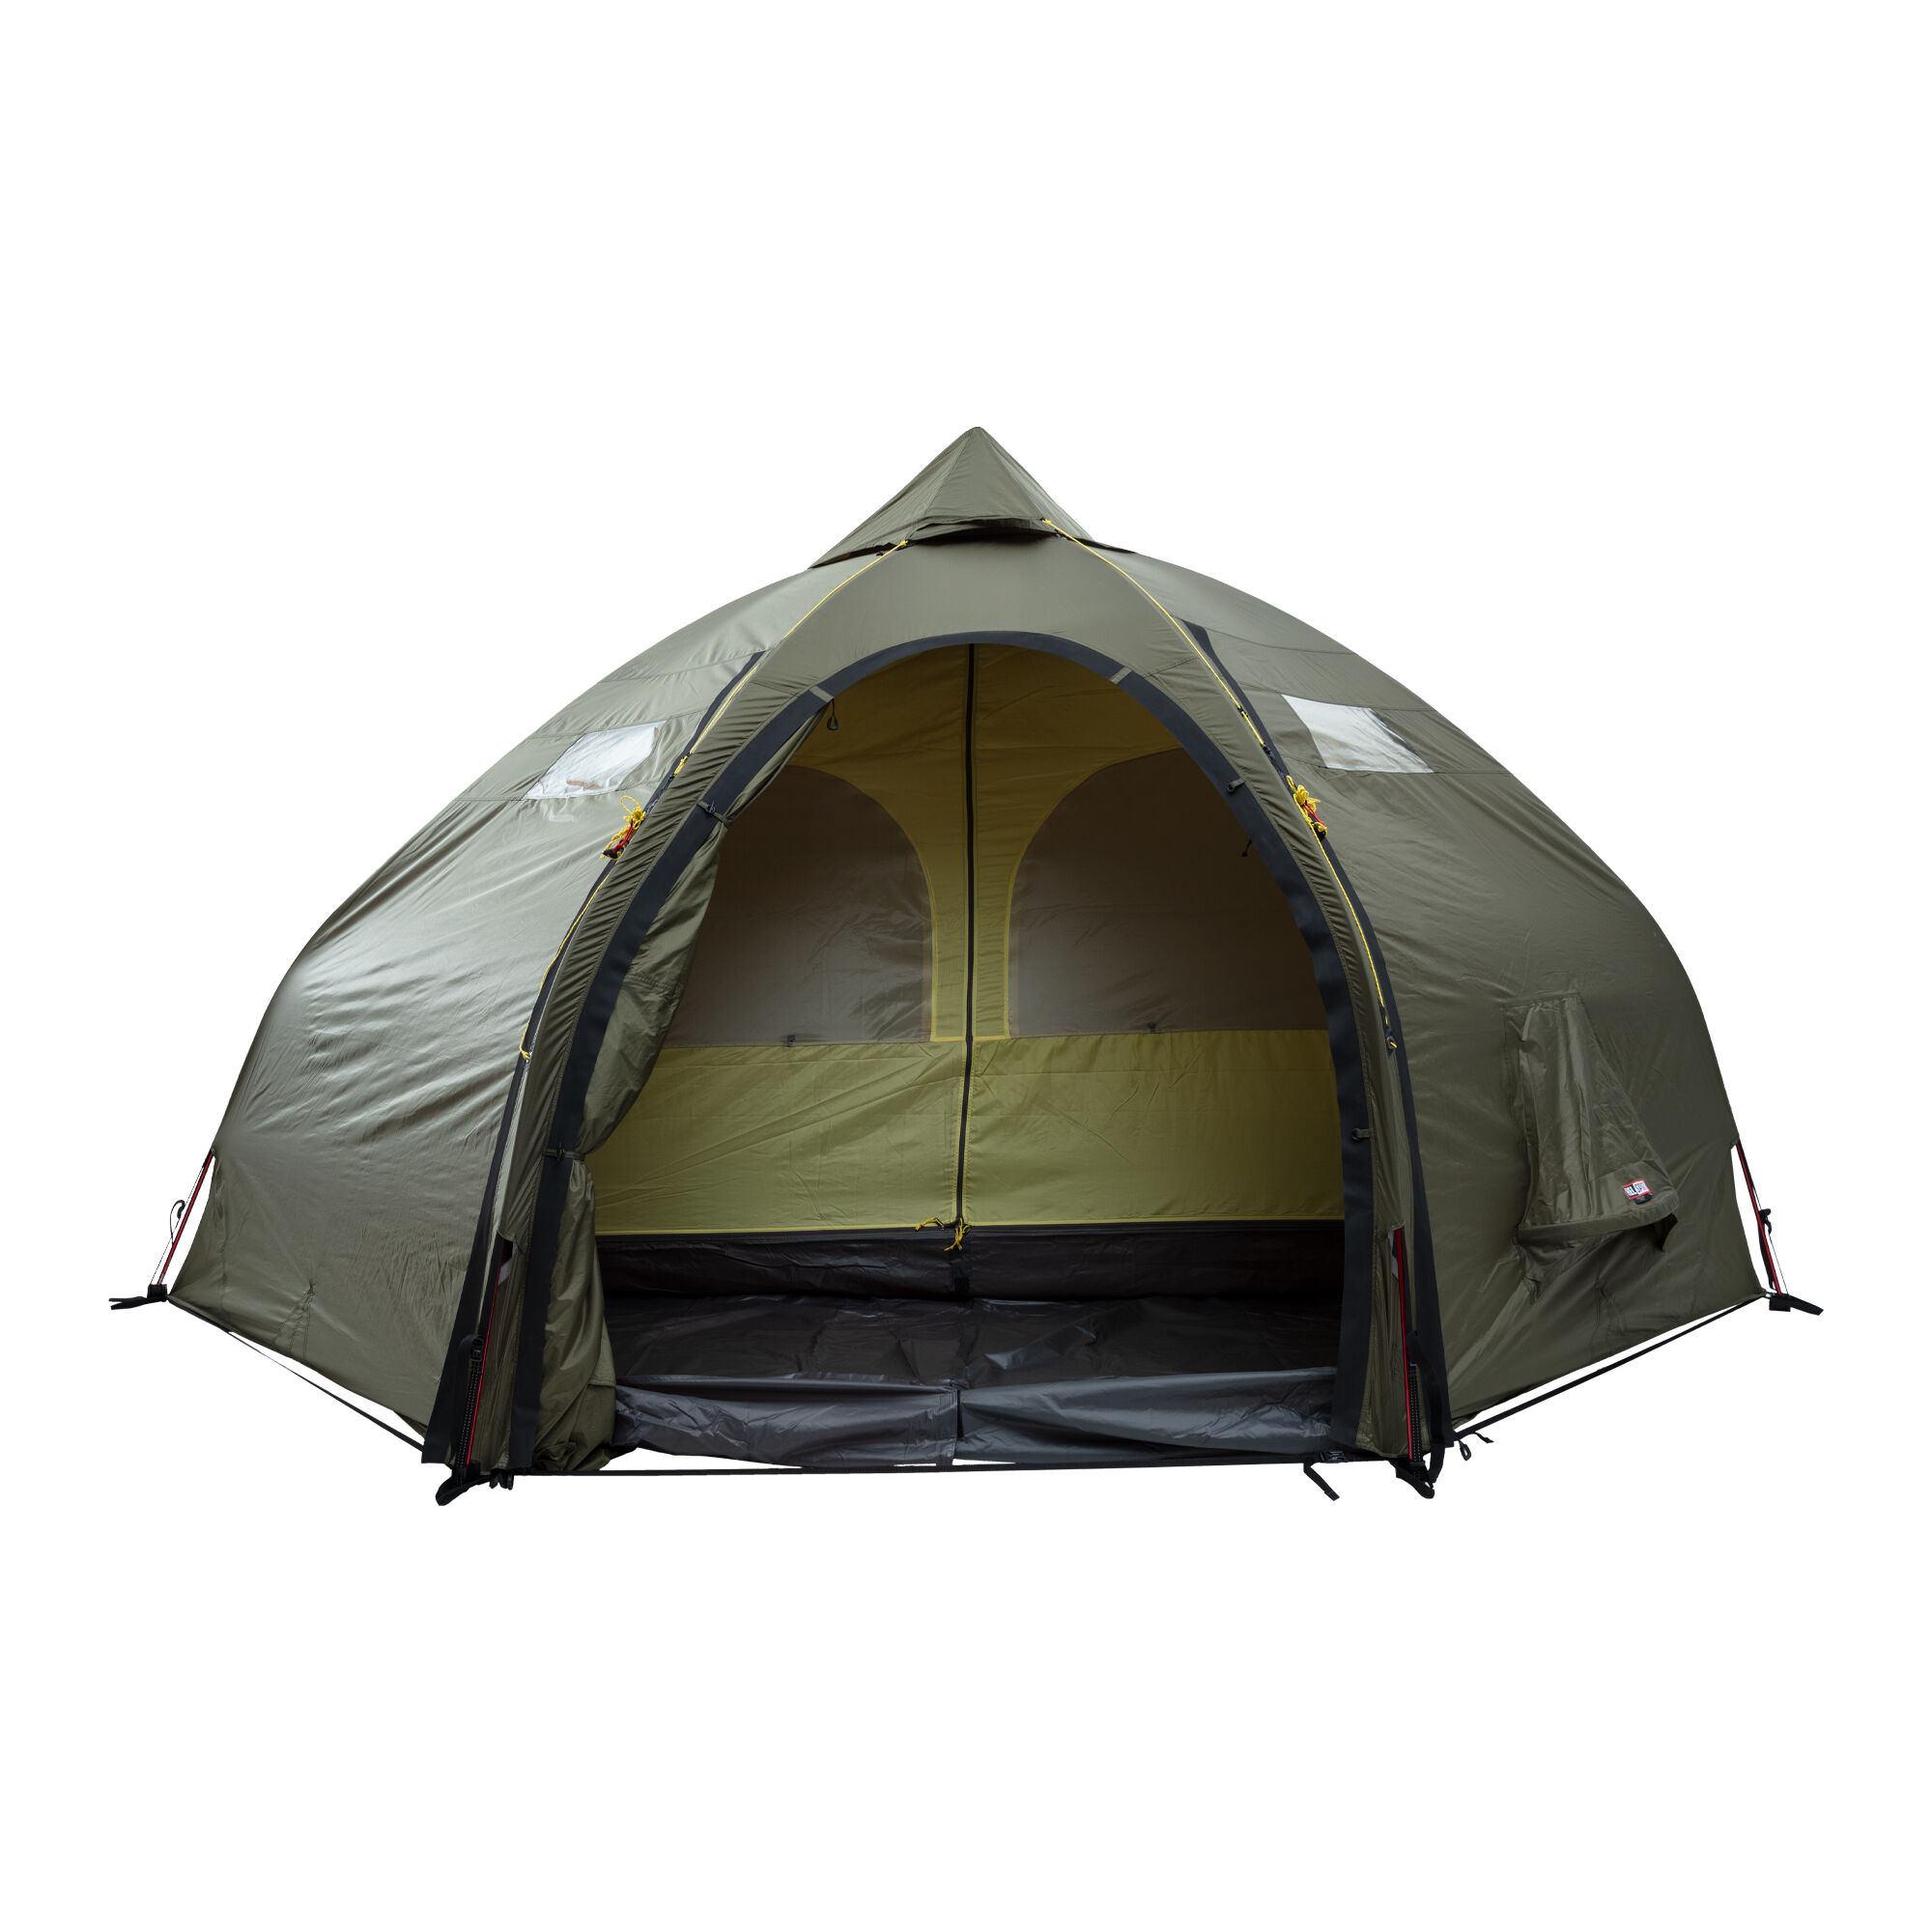 Varanger Dome 8 10 Outer Tent incl. Pole